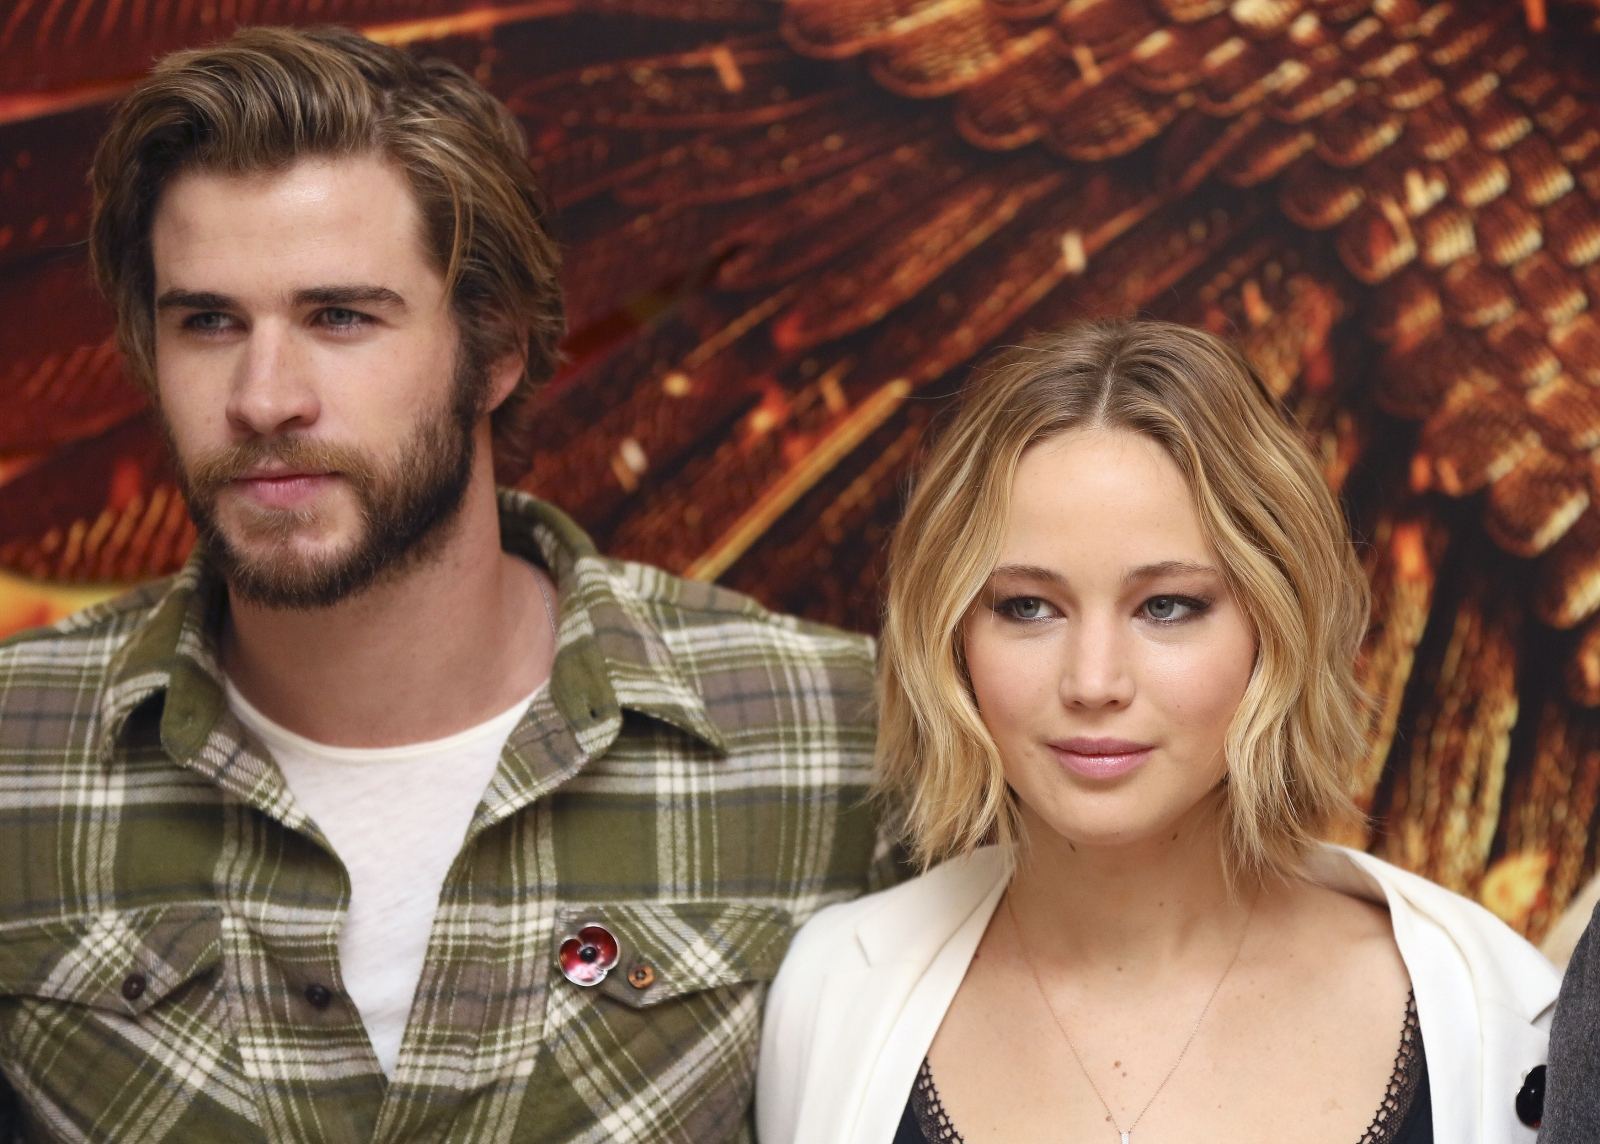 Jennifer Lawrence and Liam Hemsworth